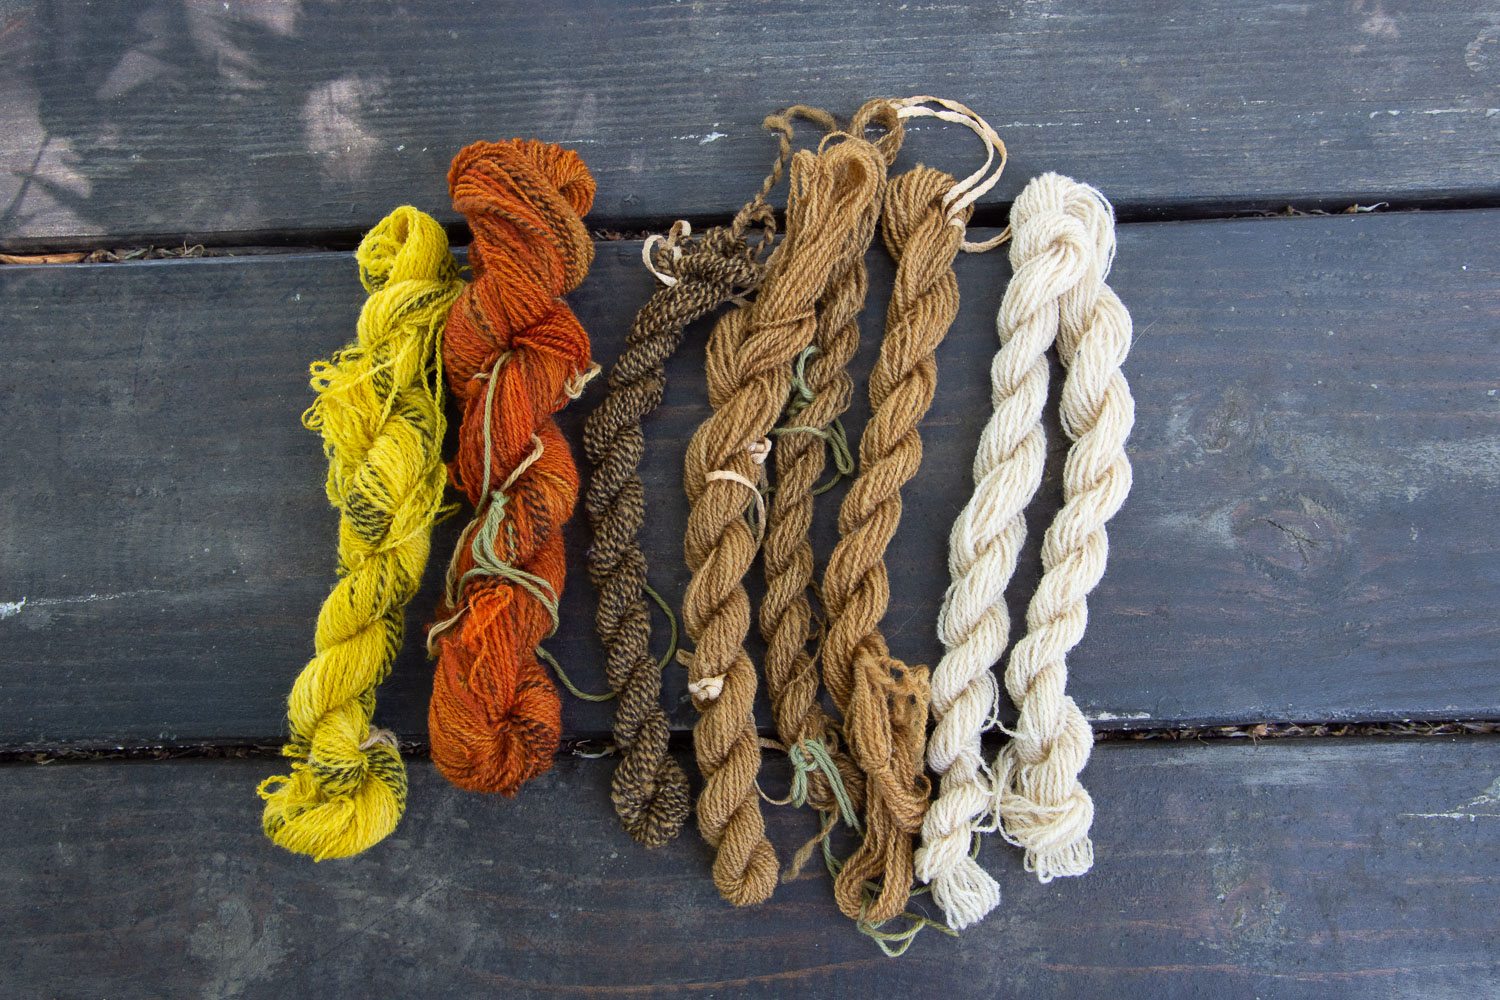 Freshly dyed Jacob yarn, dyed with natural dyes.